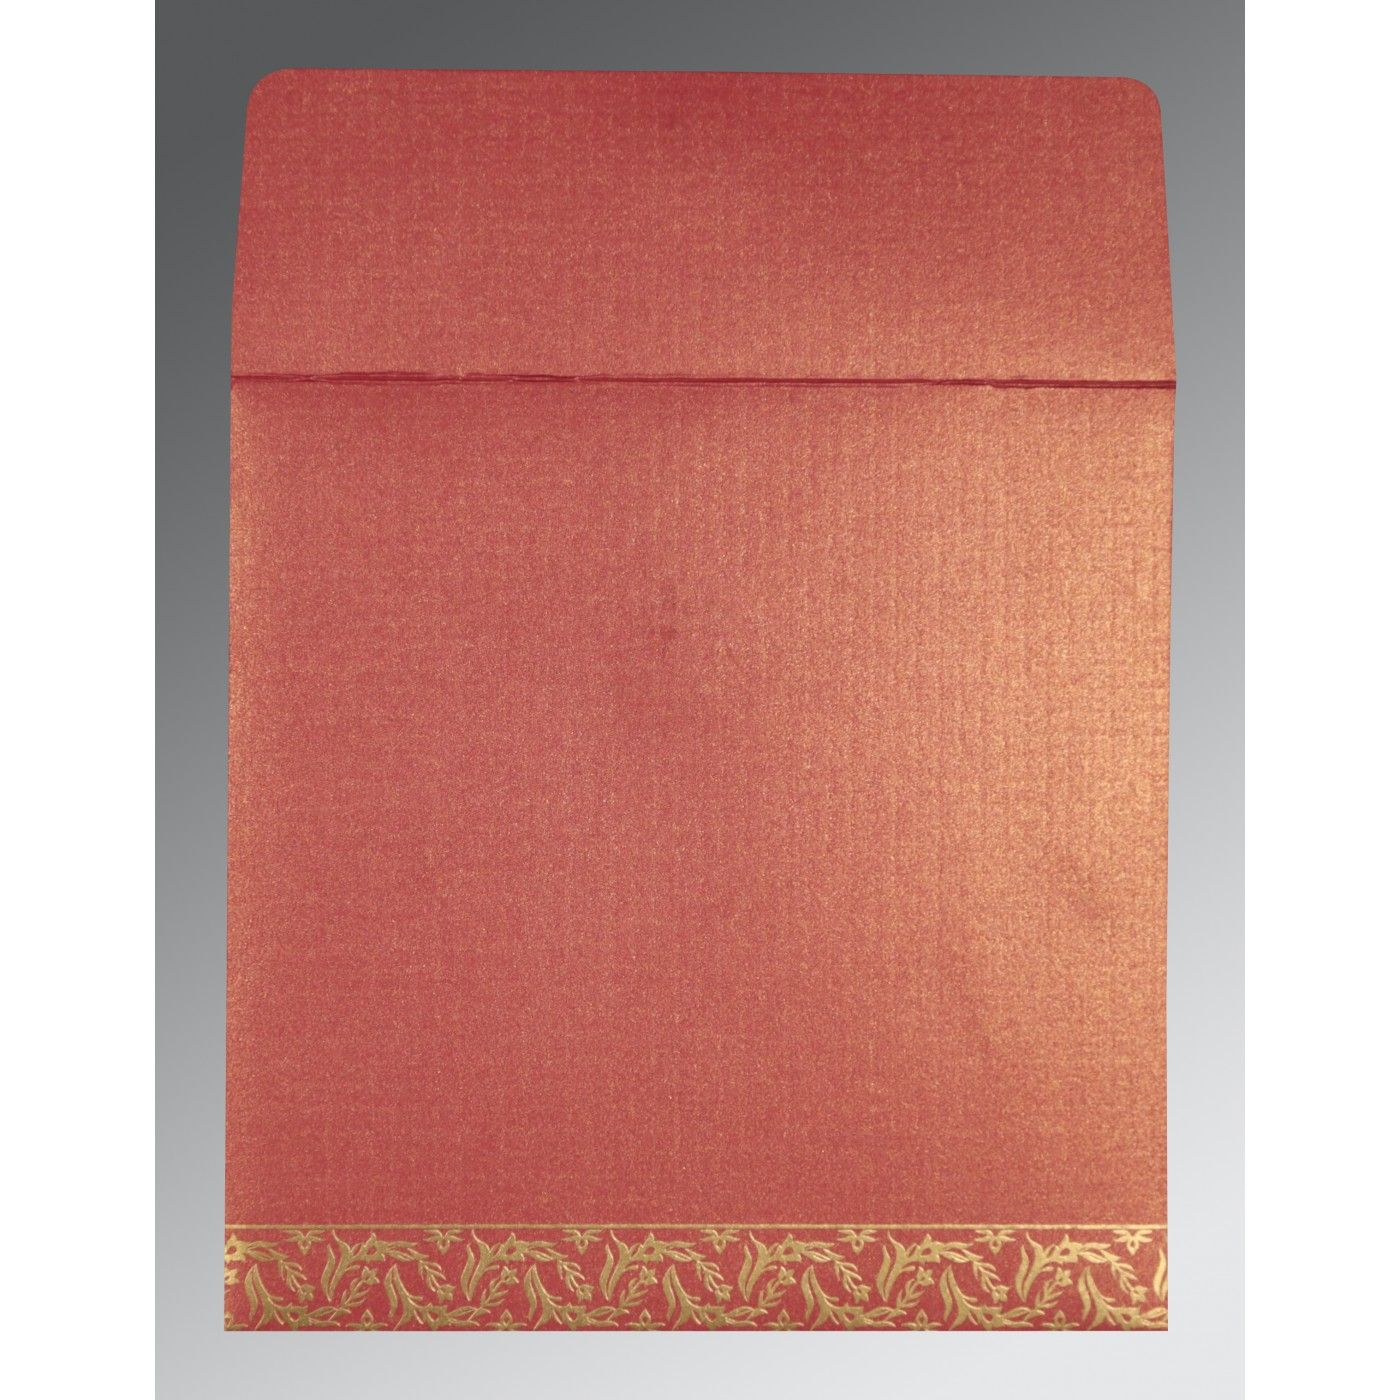 BRICK RED SHIMMERY UNIQUE THEMED - FOIL STAMPED WEDDING CARD : CS-8249K - IndianWeddingCards